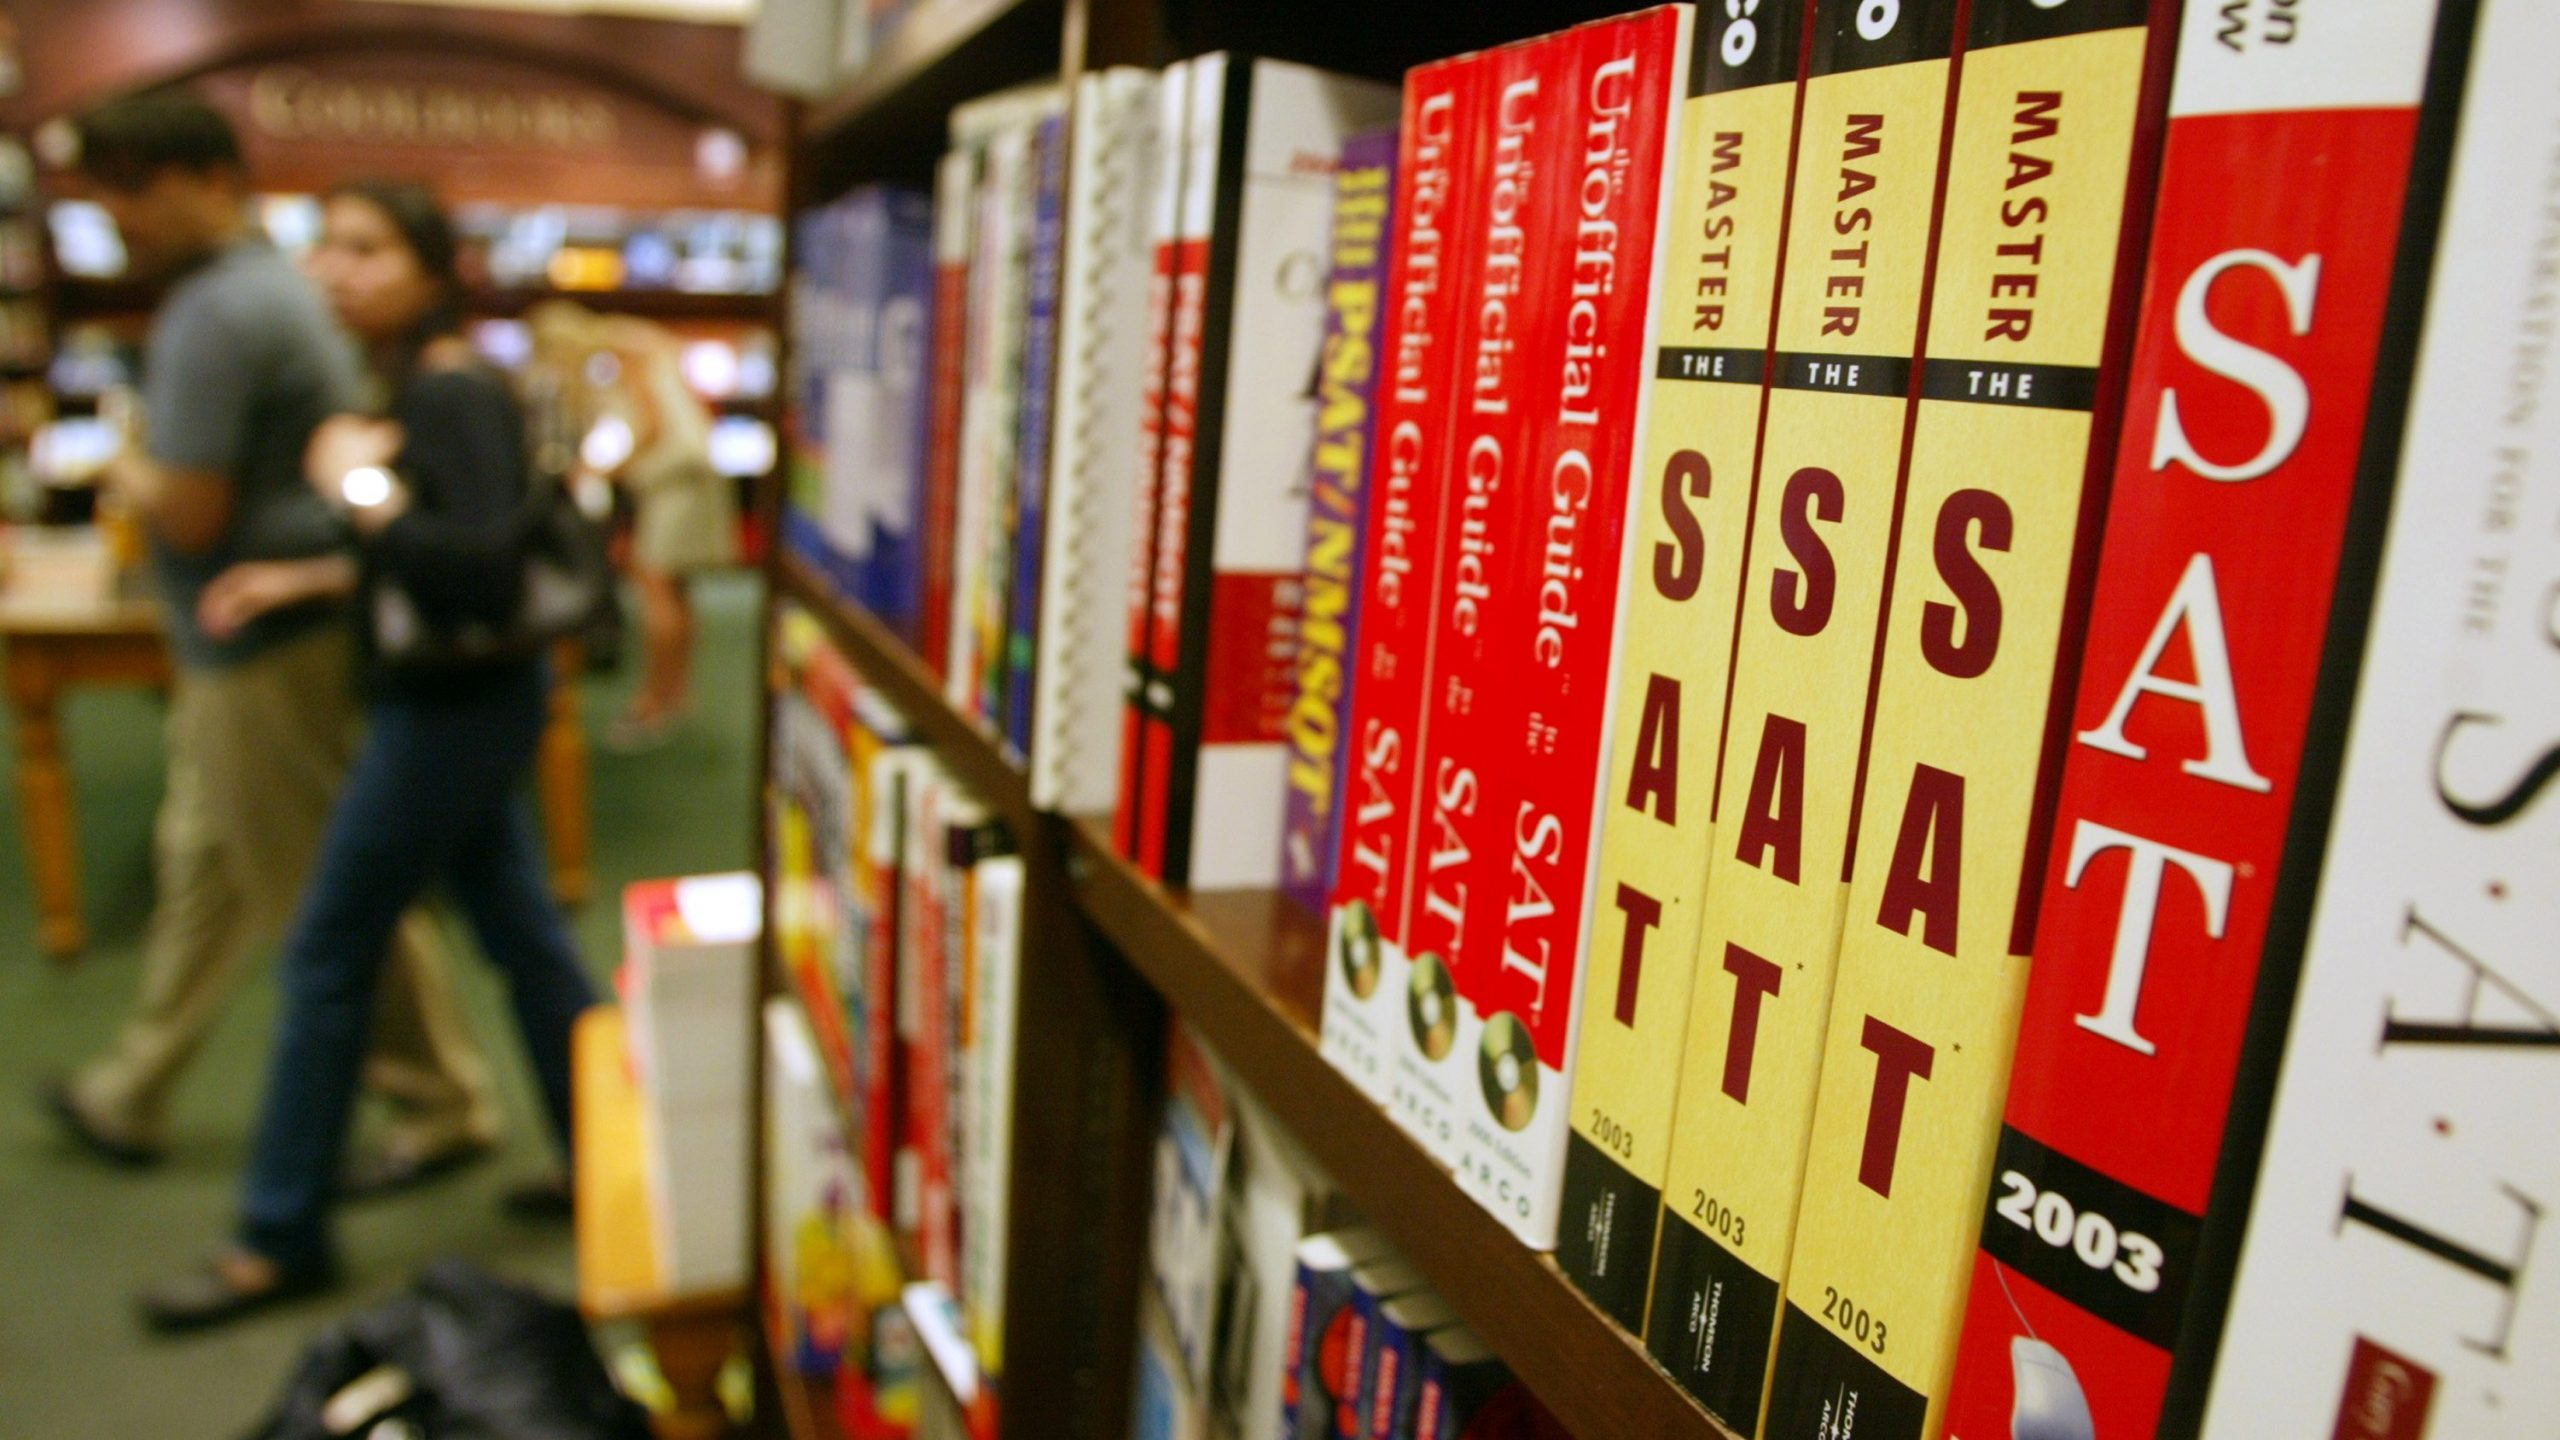 SAT test preparation books sit on a shelf at a Barnes and Noble store June 27, 2002 in New York City. (Credit: Mario Tama/Getty Images)